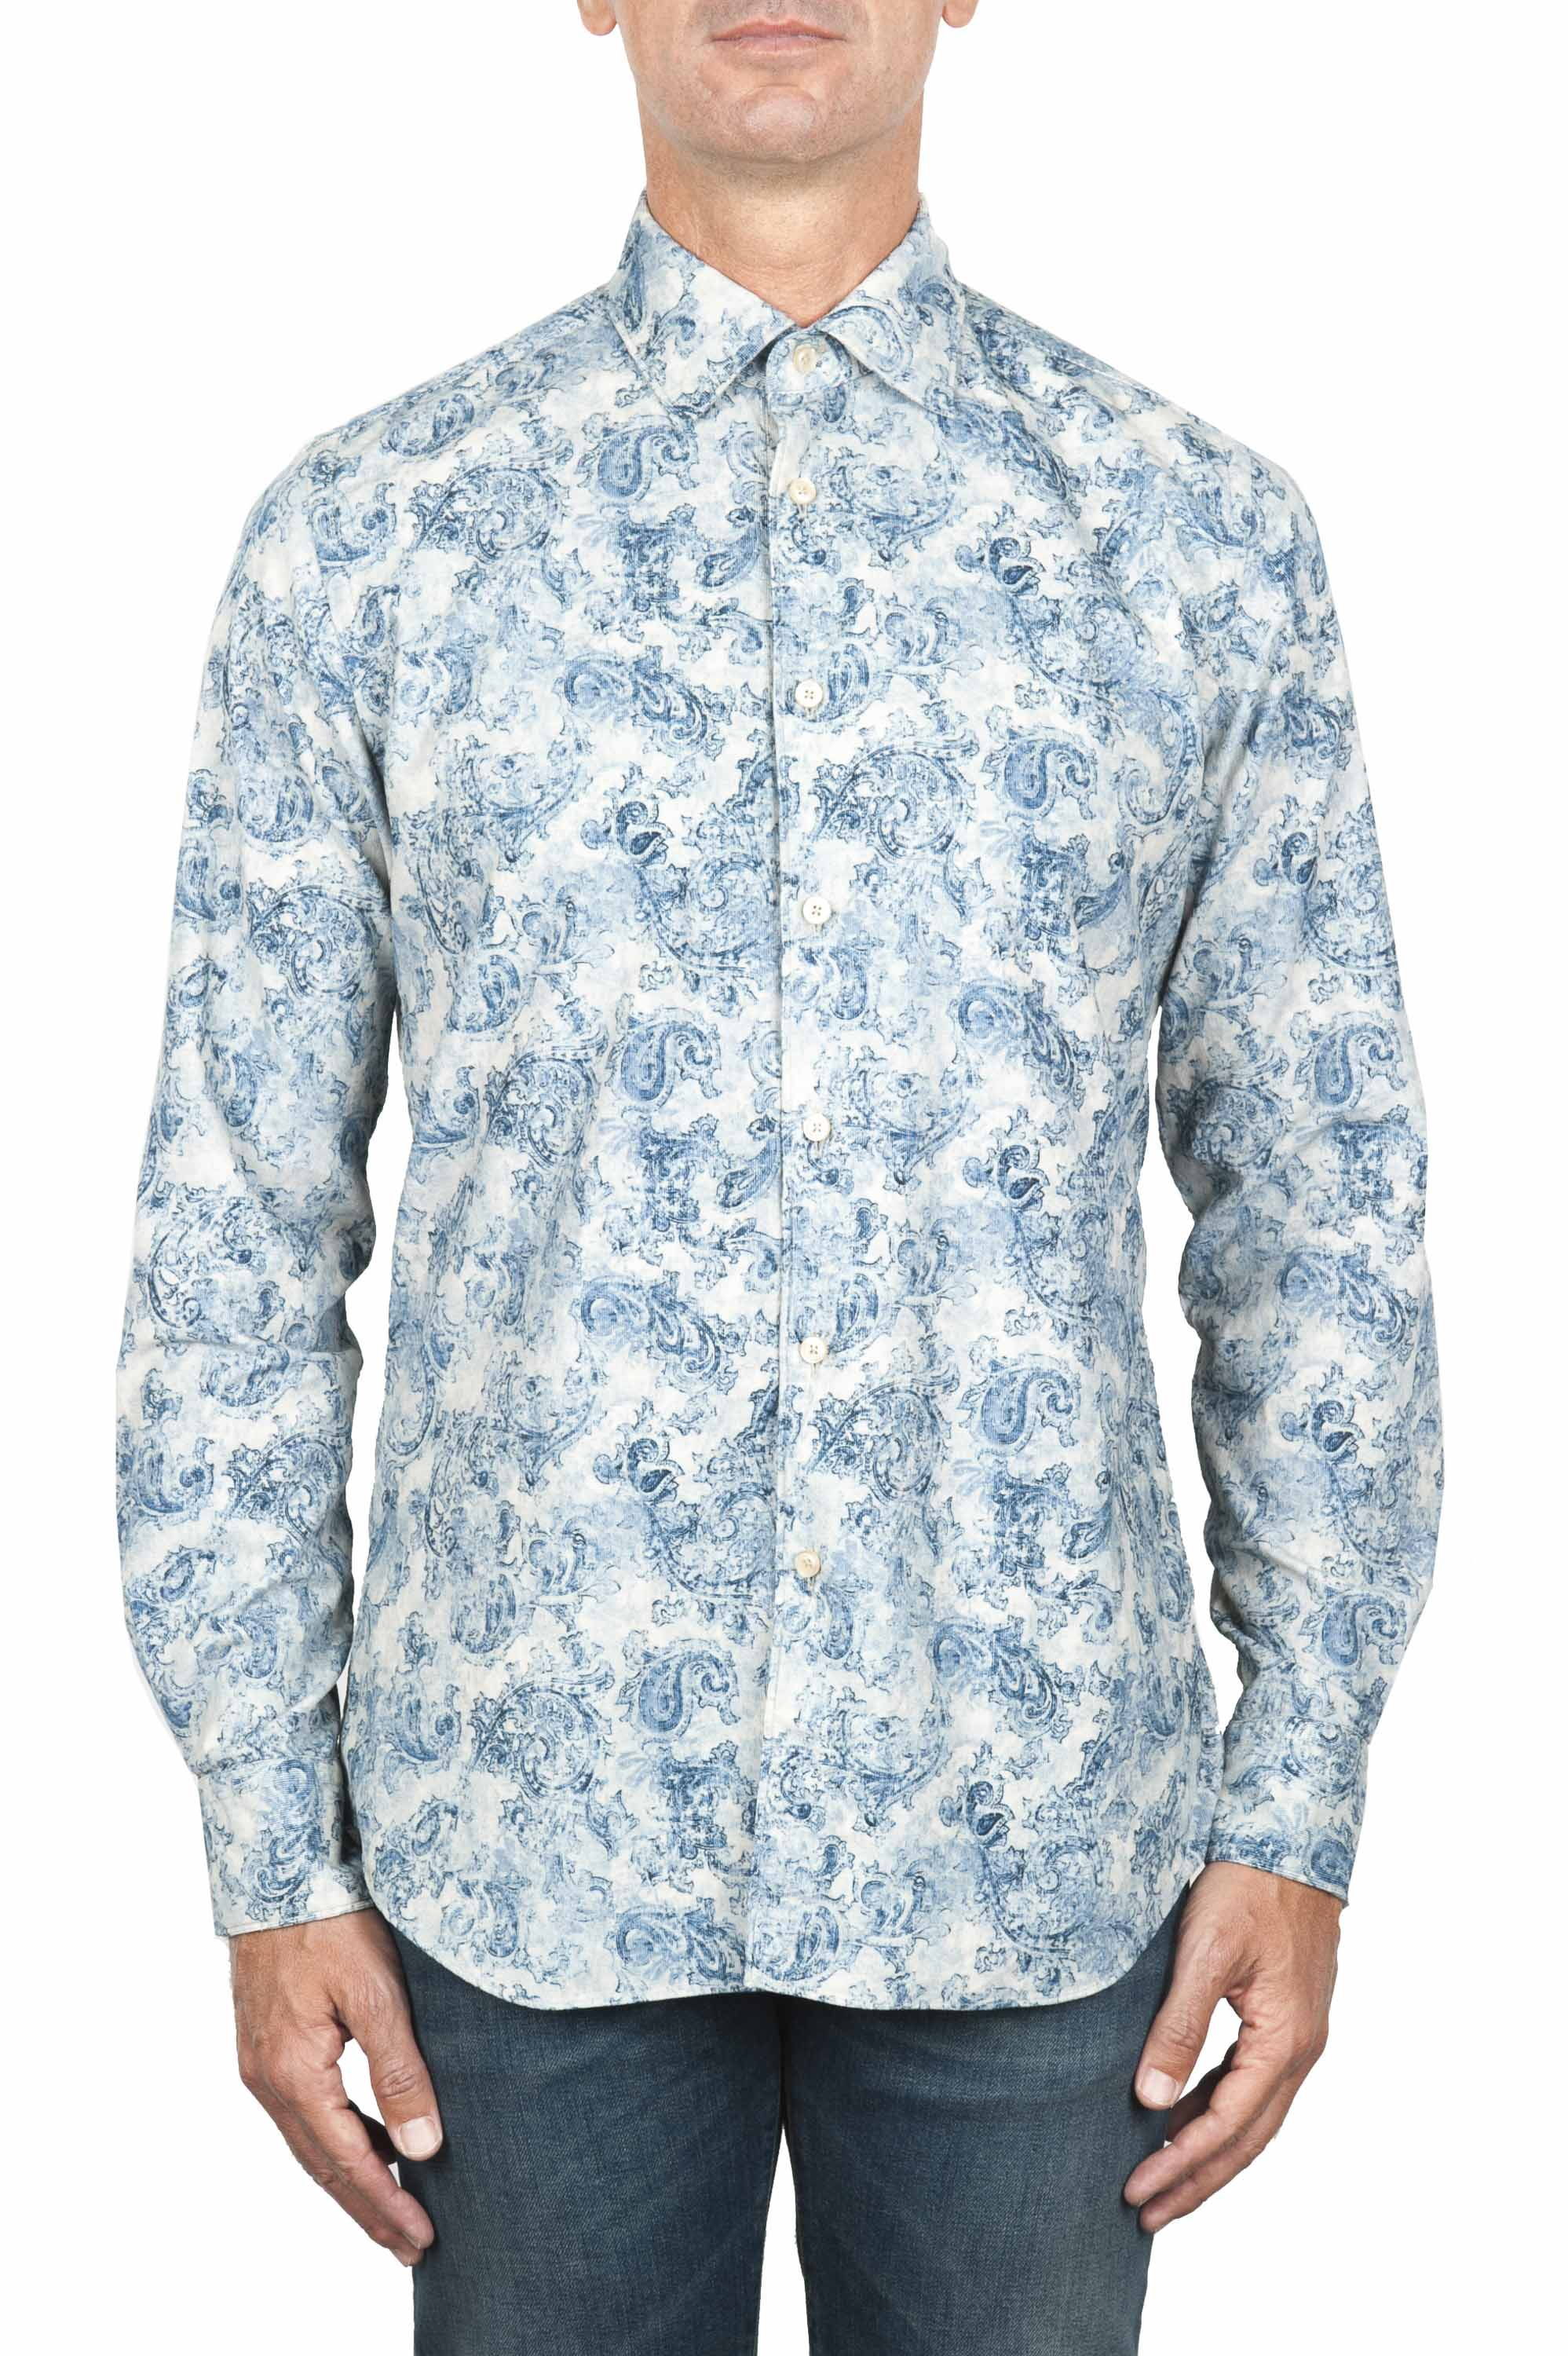 SBU Shirts Autumn Winter 2020 Collection